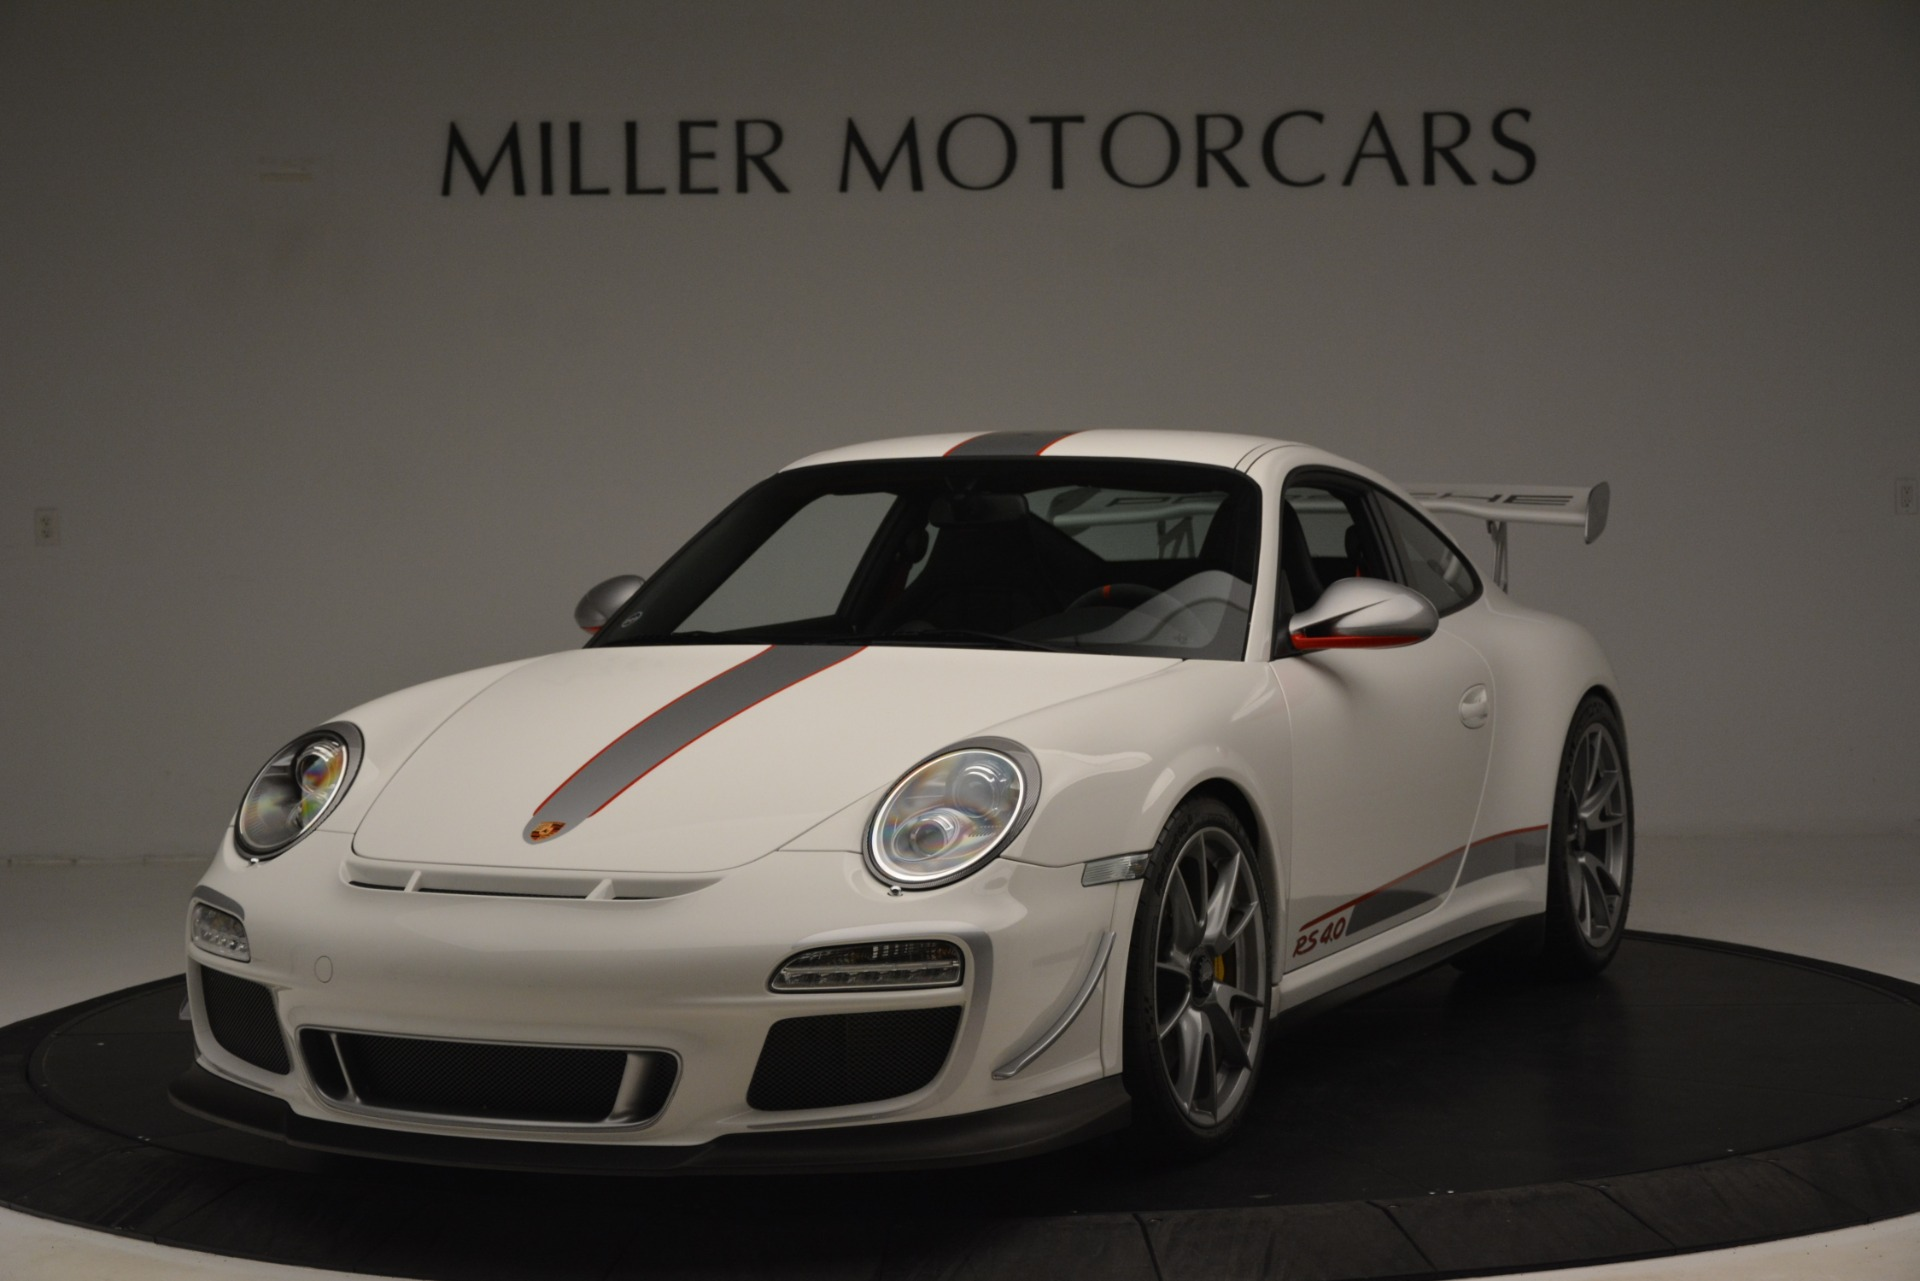 Used 2011 Porsche 911 GT3 RS 4.0 for sale Sold at Maserati of Westport in Westport CT 06880 1